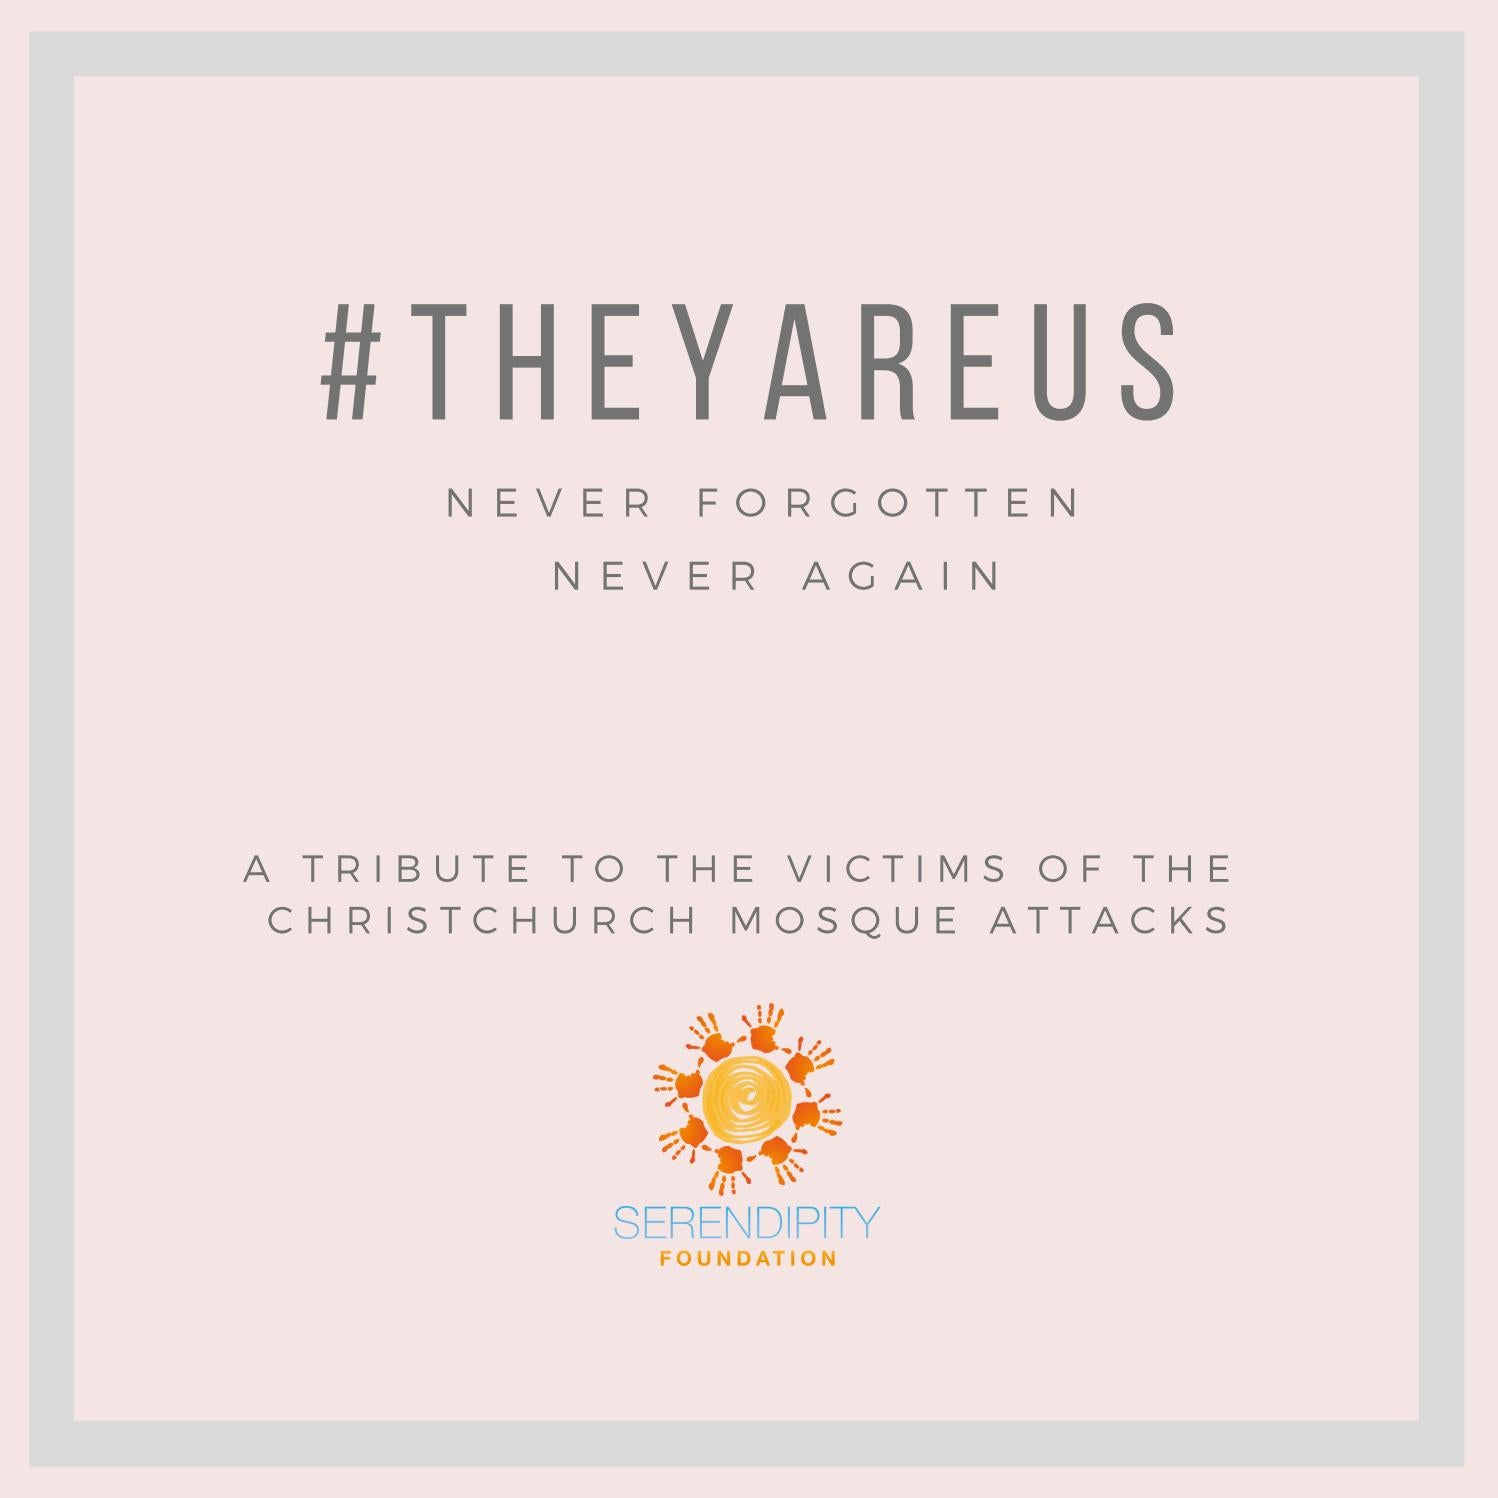 theyareus - A Tribute of Condolences to the victims of the